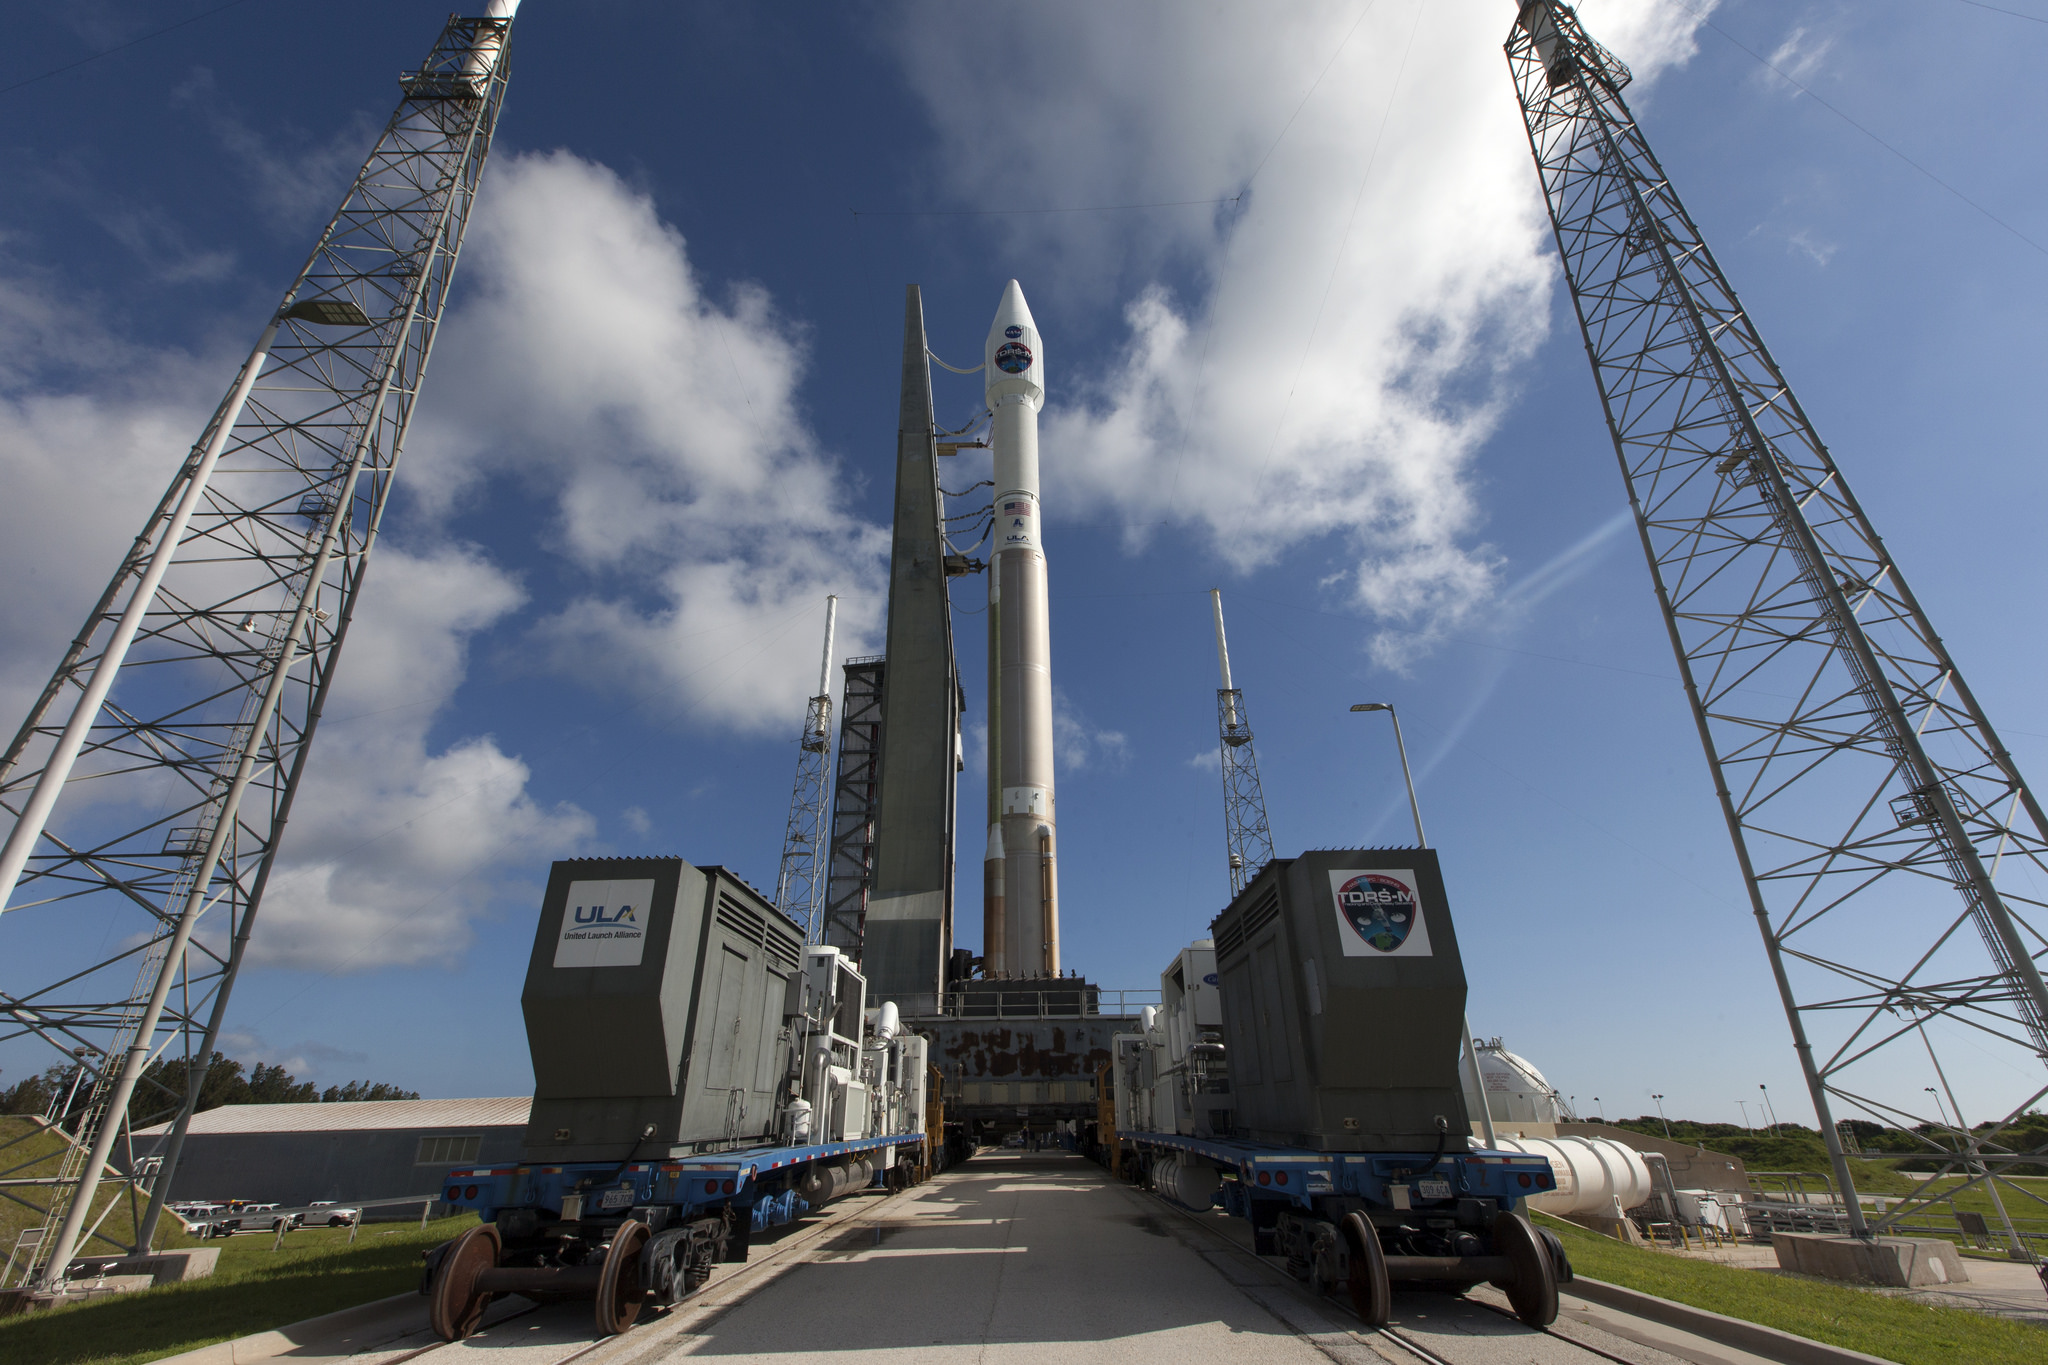 Atlas v rocket with tdrs m in place at launch pad tdrs m for Space v place